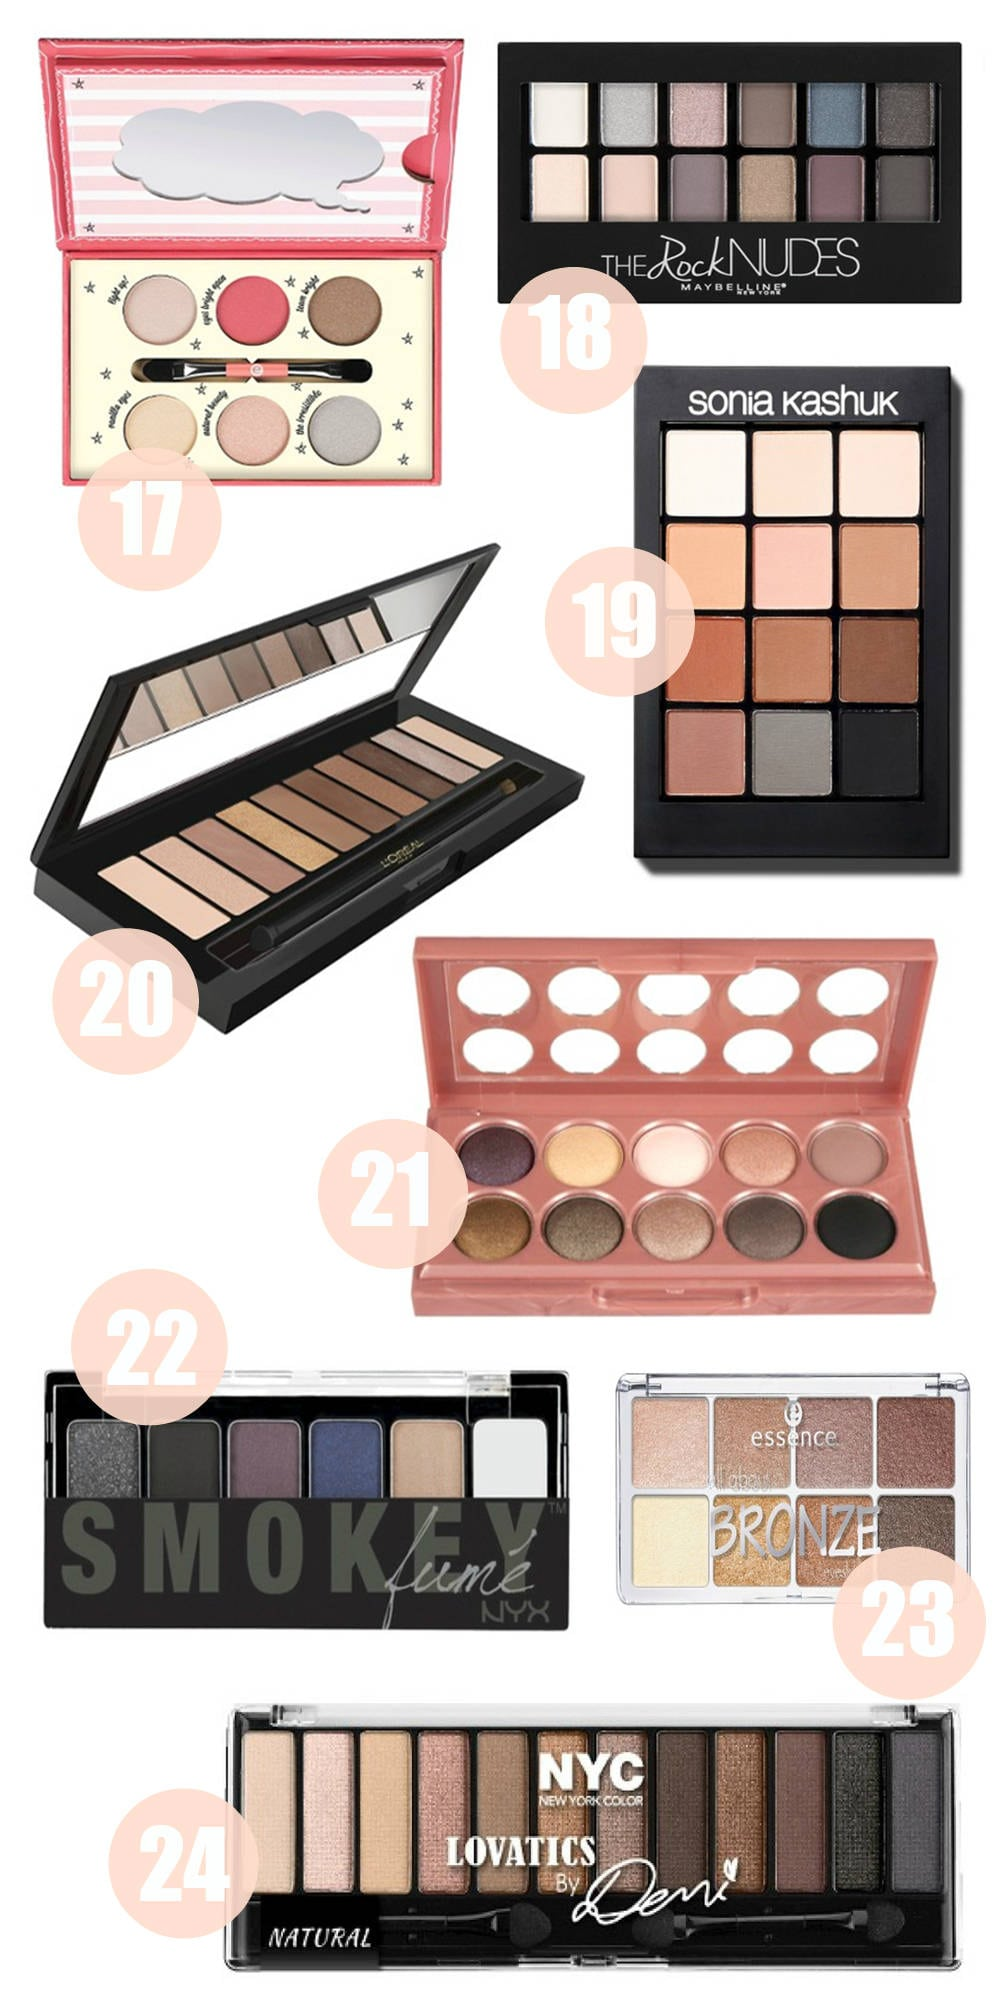 Beauty blogger Mash Elle shares her top eyeshadow palettes under $20